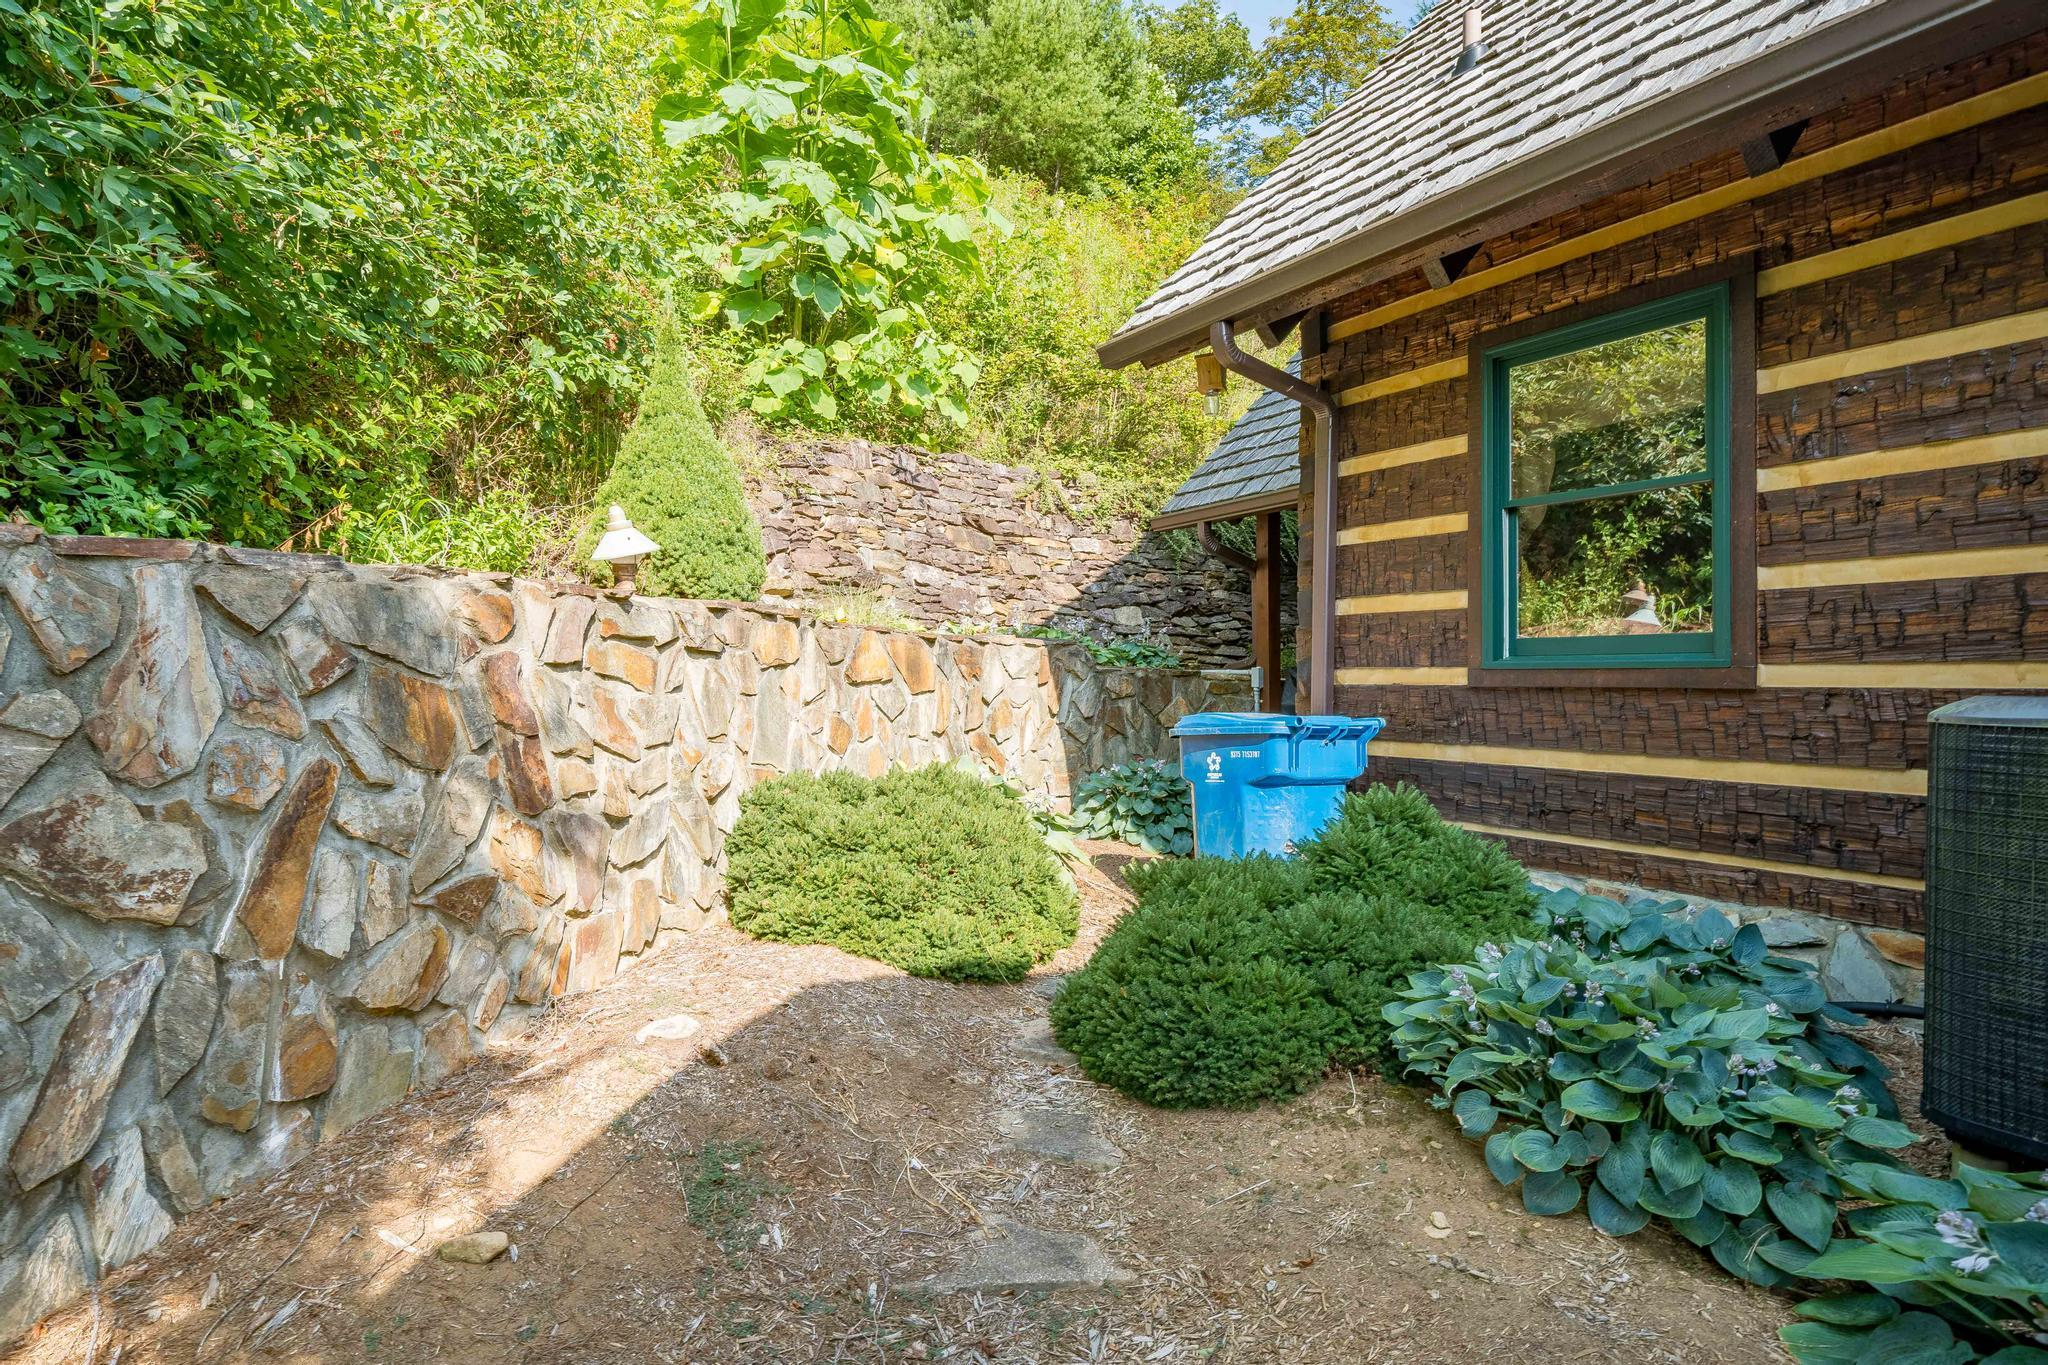 709 cove edge dr (17 of 72)